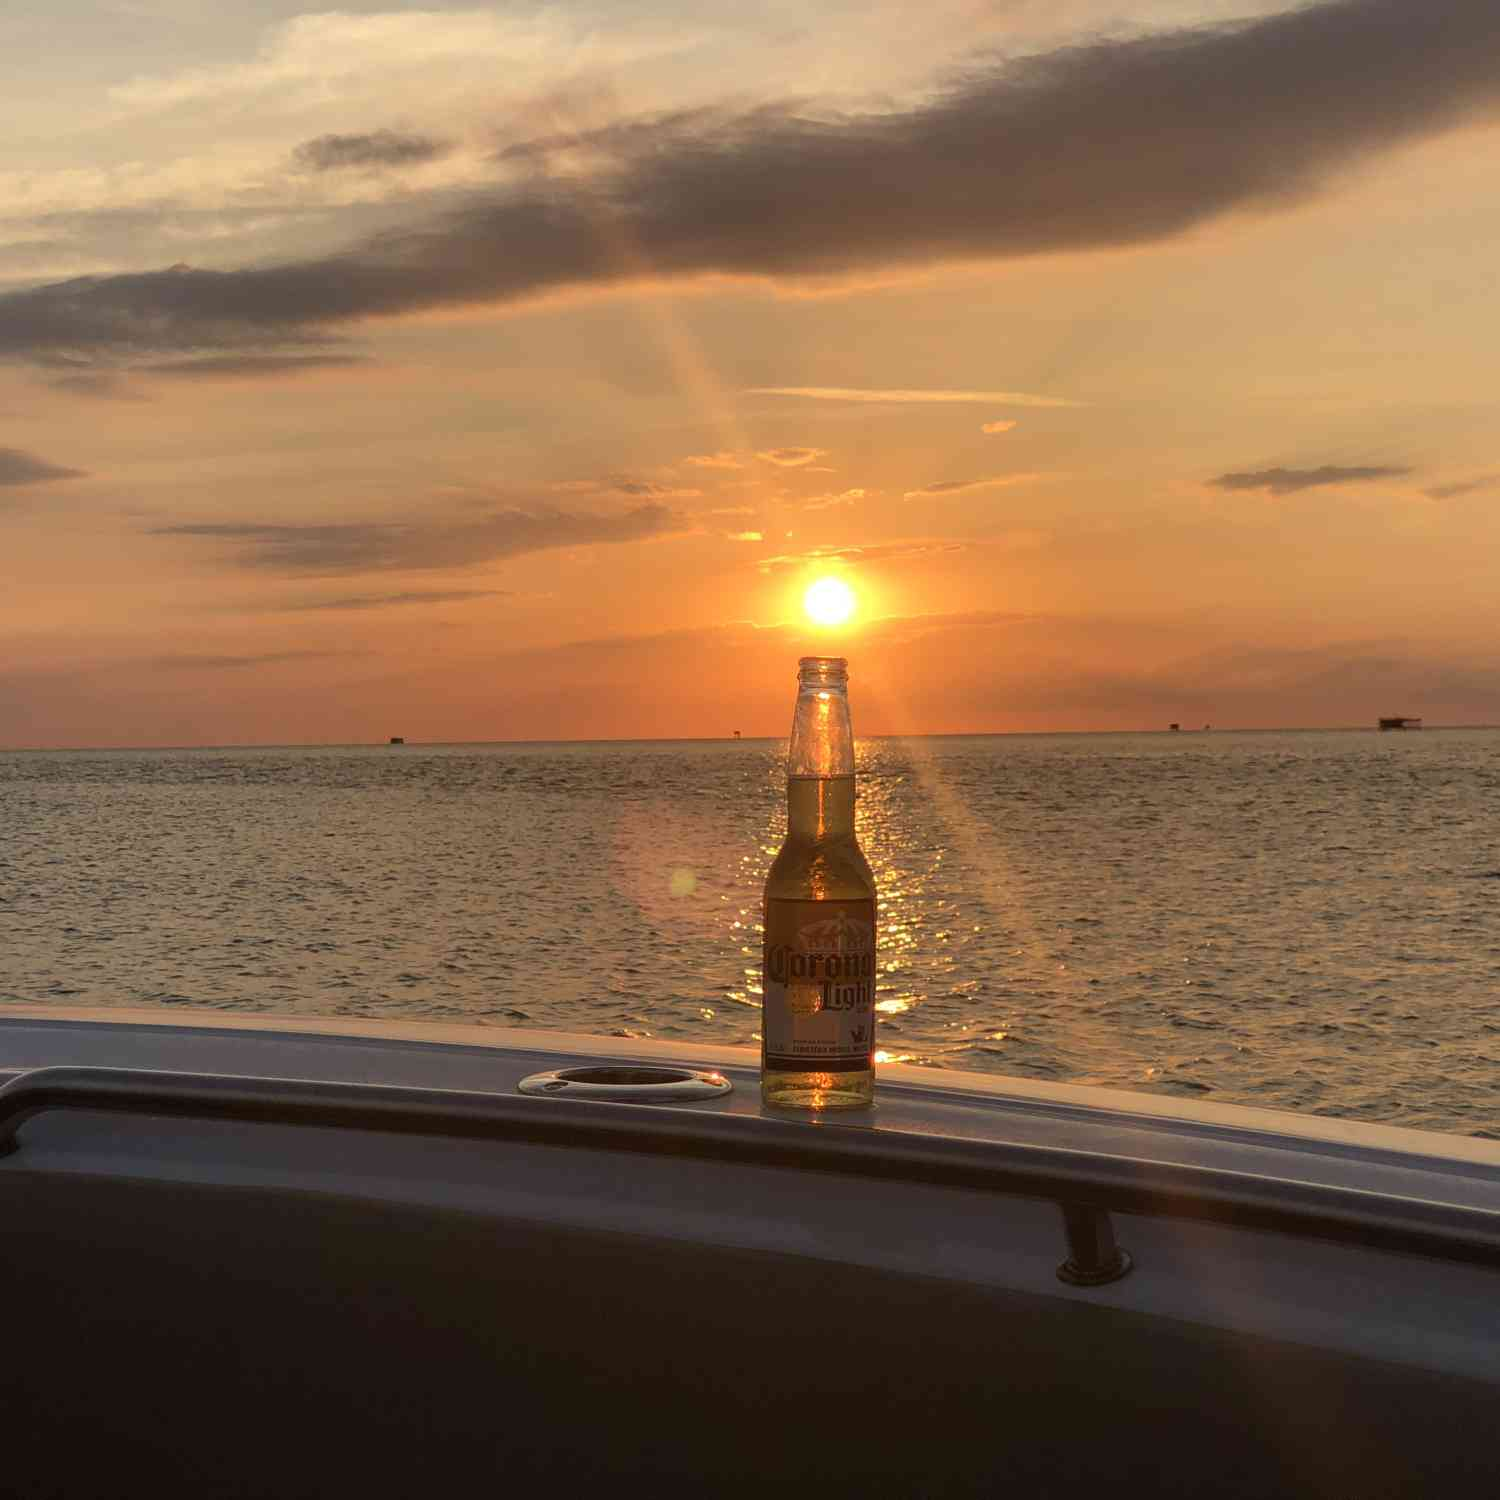 Title: Sunset - On board their Sportsman Open 252 Center Console - Location: Nags Head, NC. Participating in the Photo Contest #SportsmanAugust2018